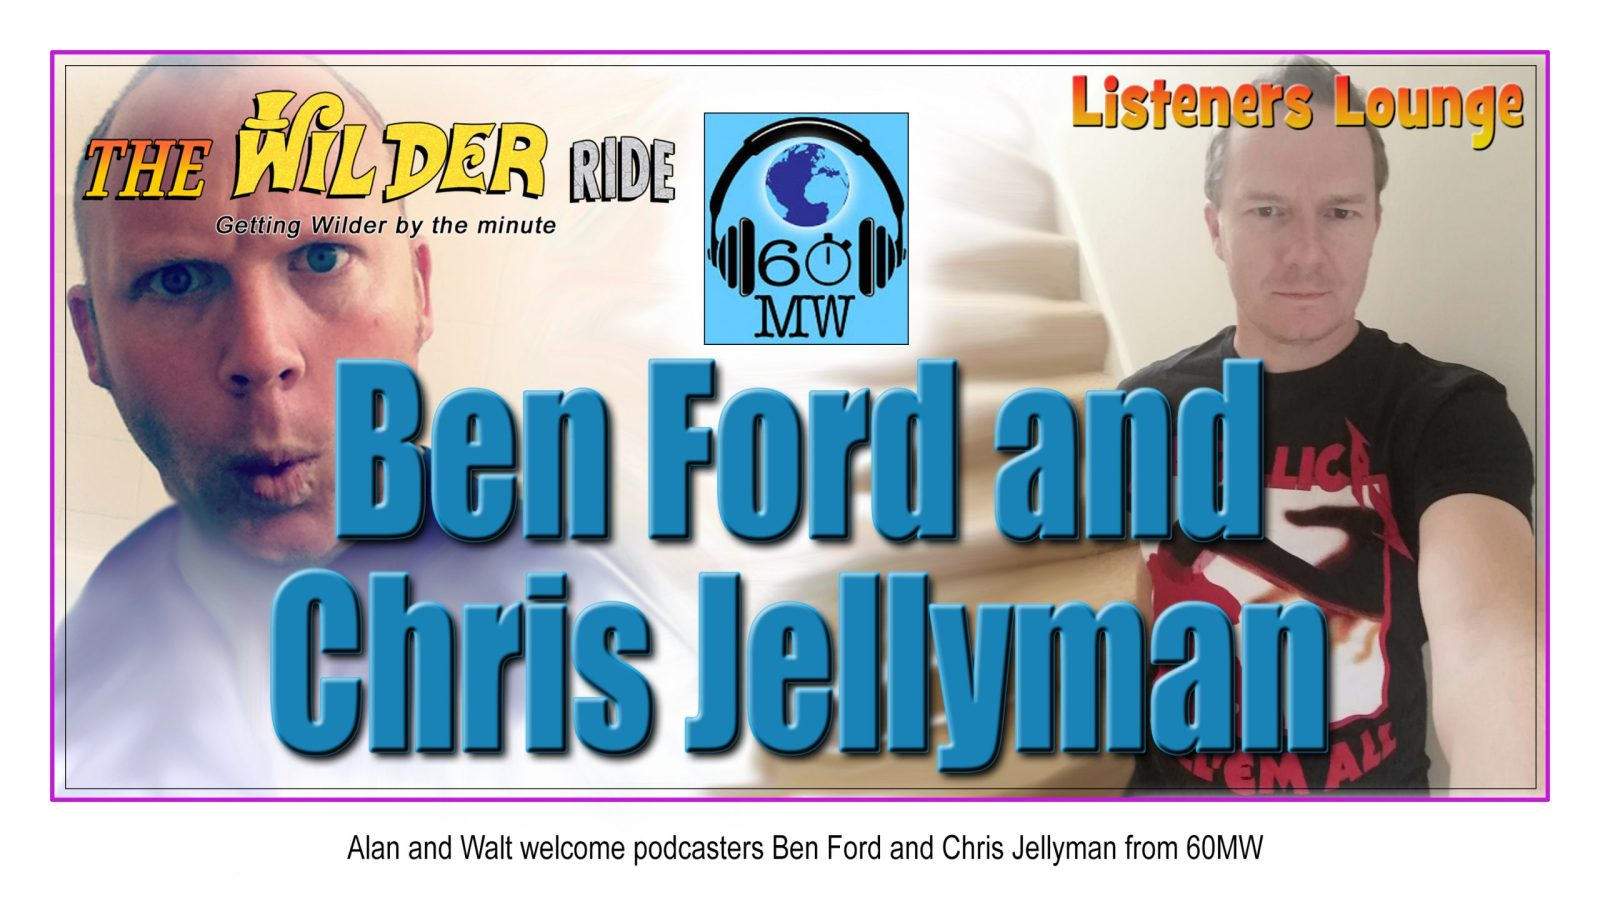 Ben Ford and Chris Jellyman